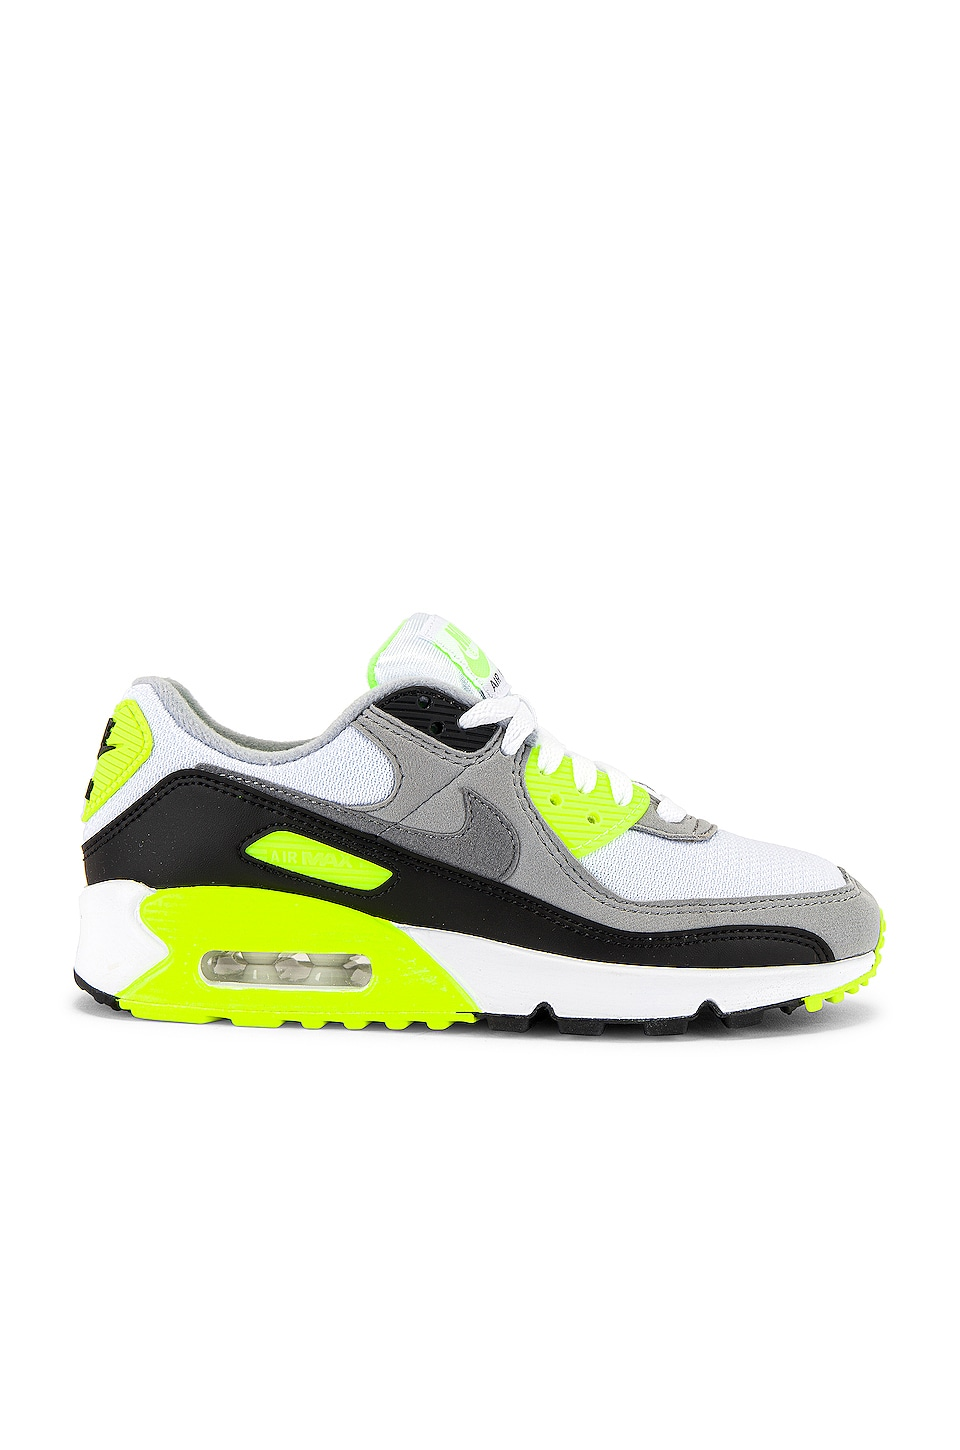 Nike Air Max 90 Sneaker in Multi